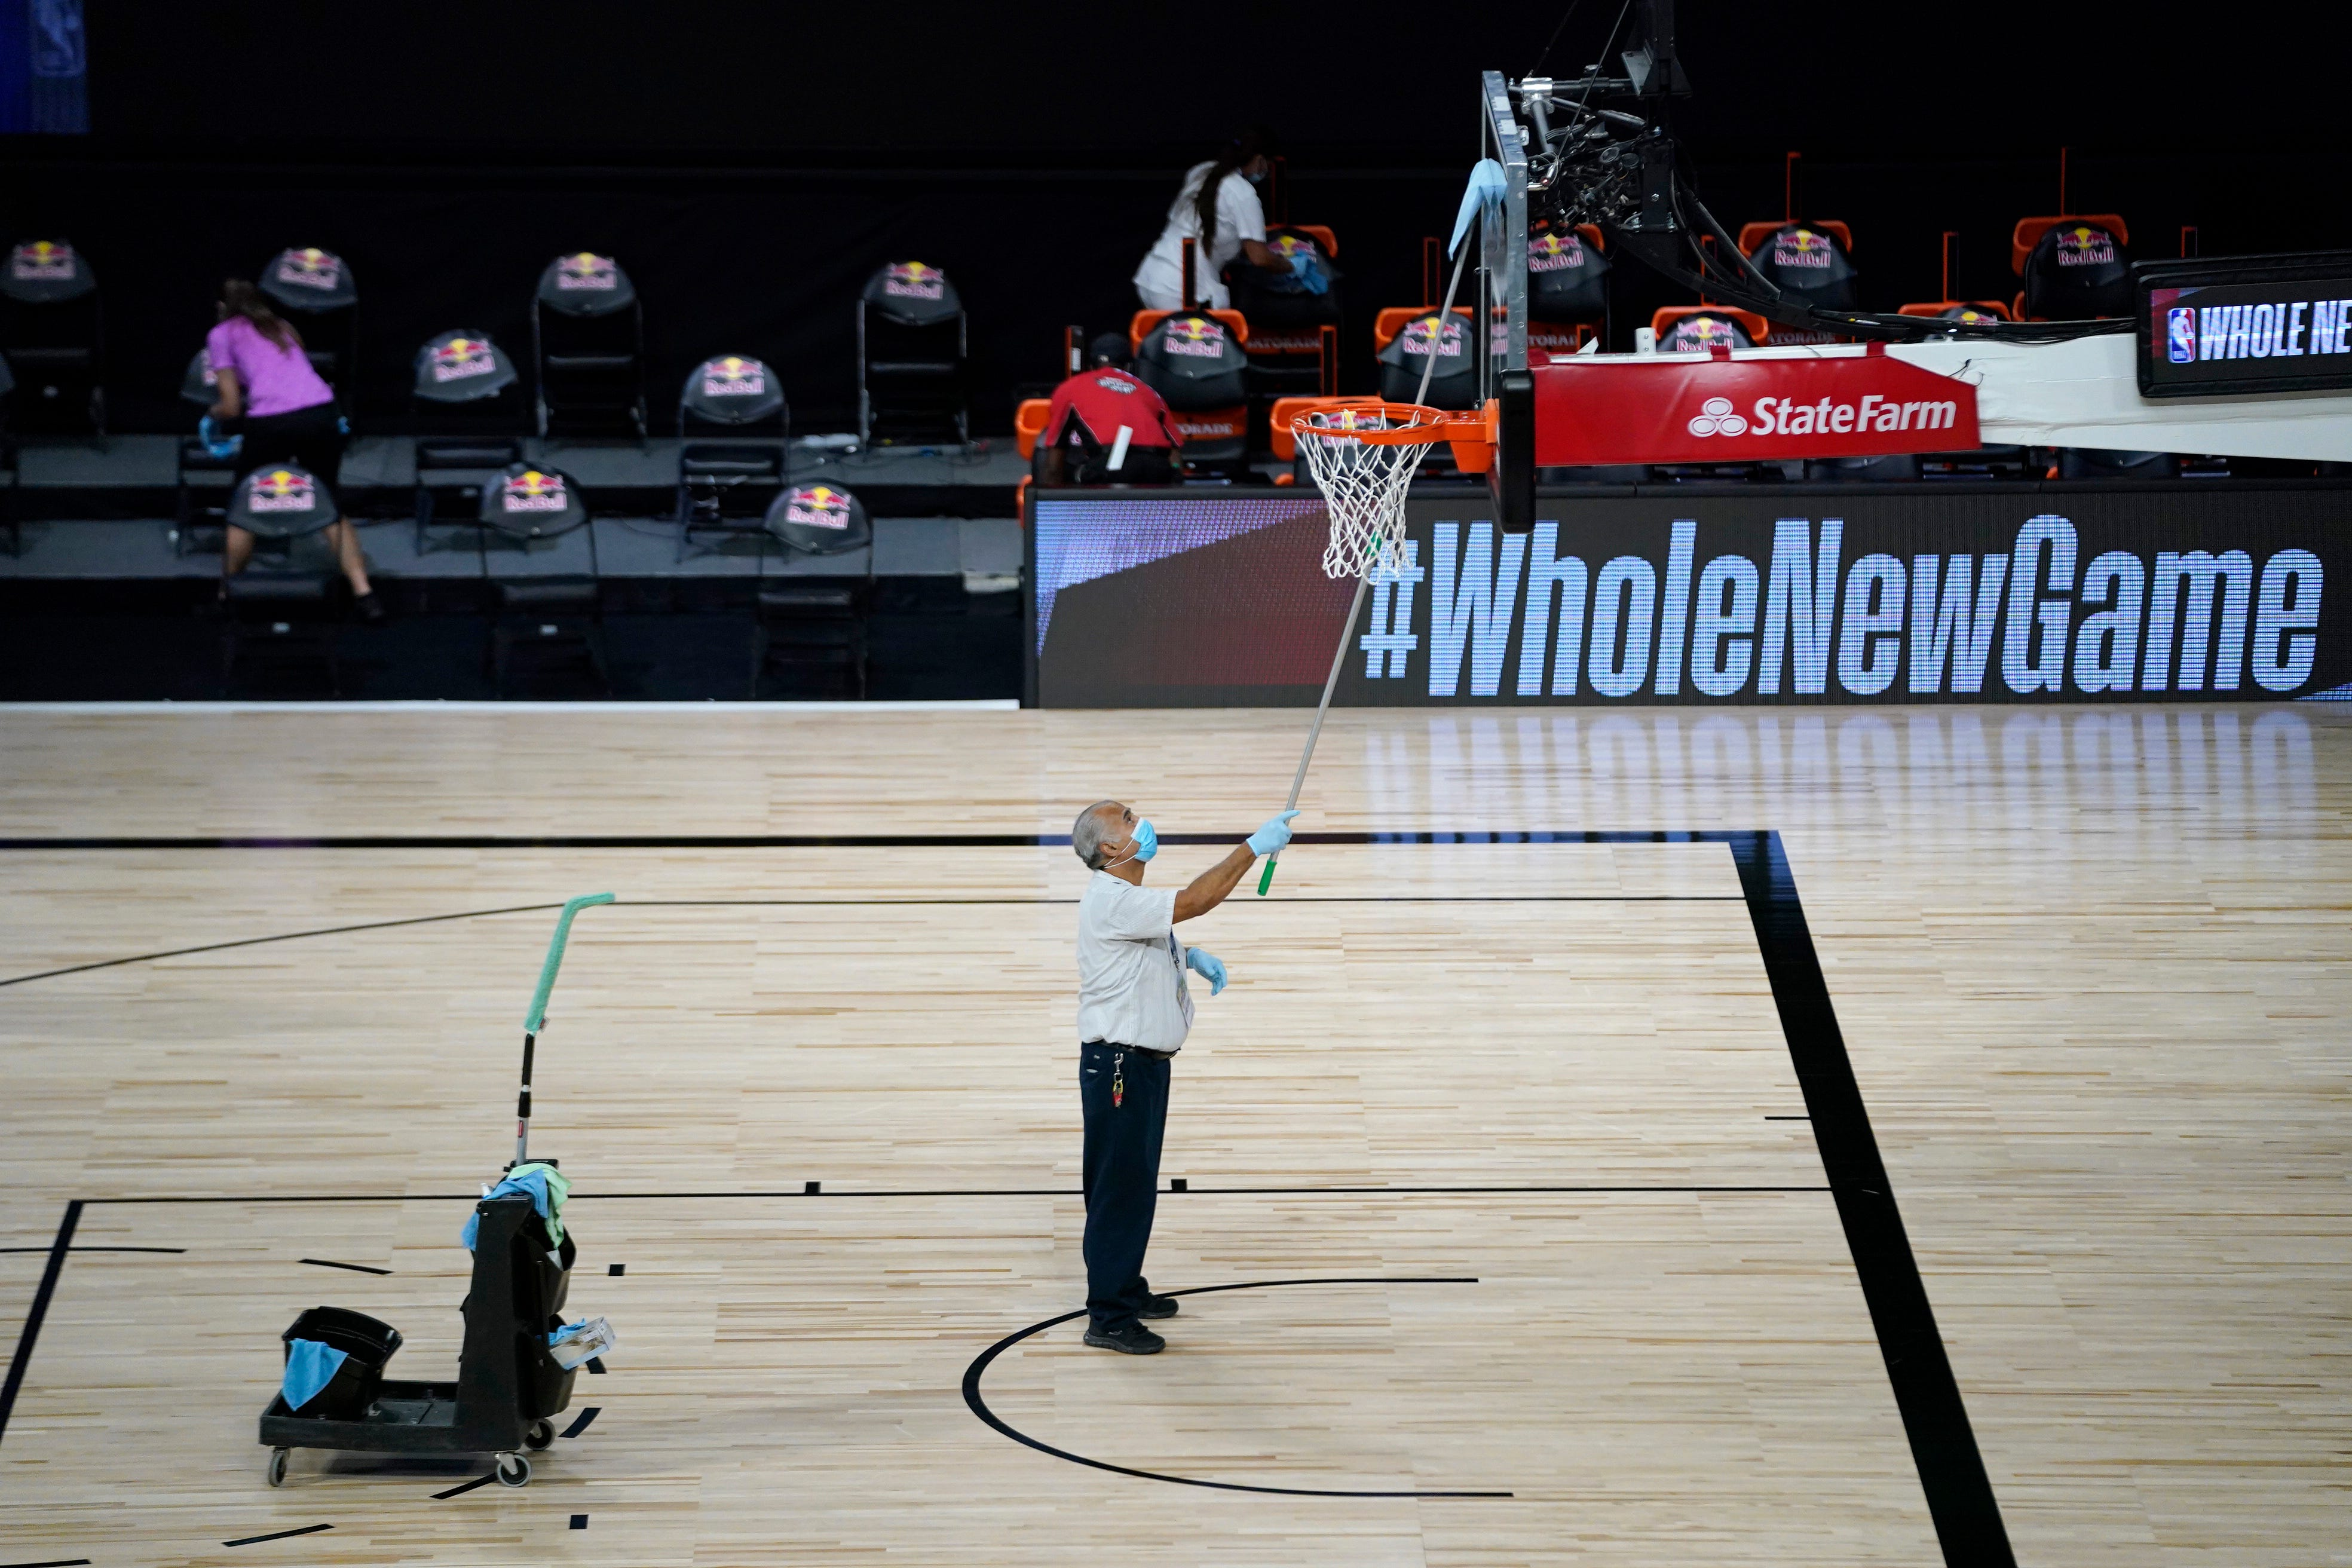 A worker cleans the backboard during the game between the Celtics and Bucks.